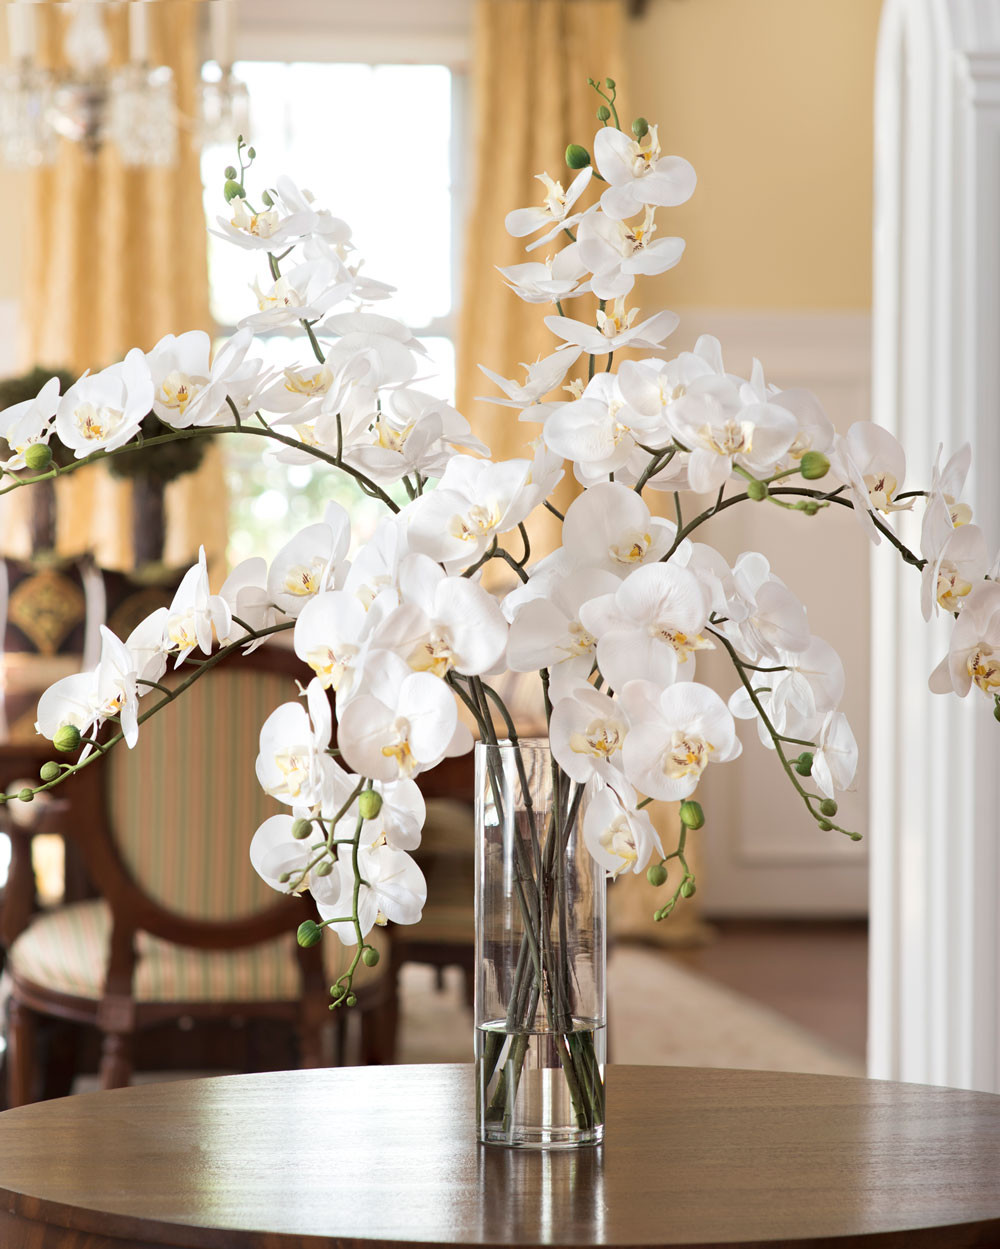 10 Spectacular Large Vase Arrangements